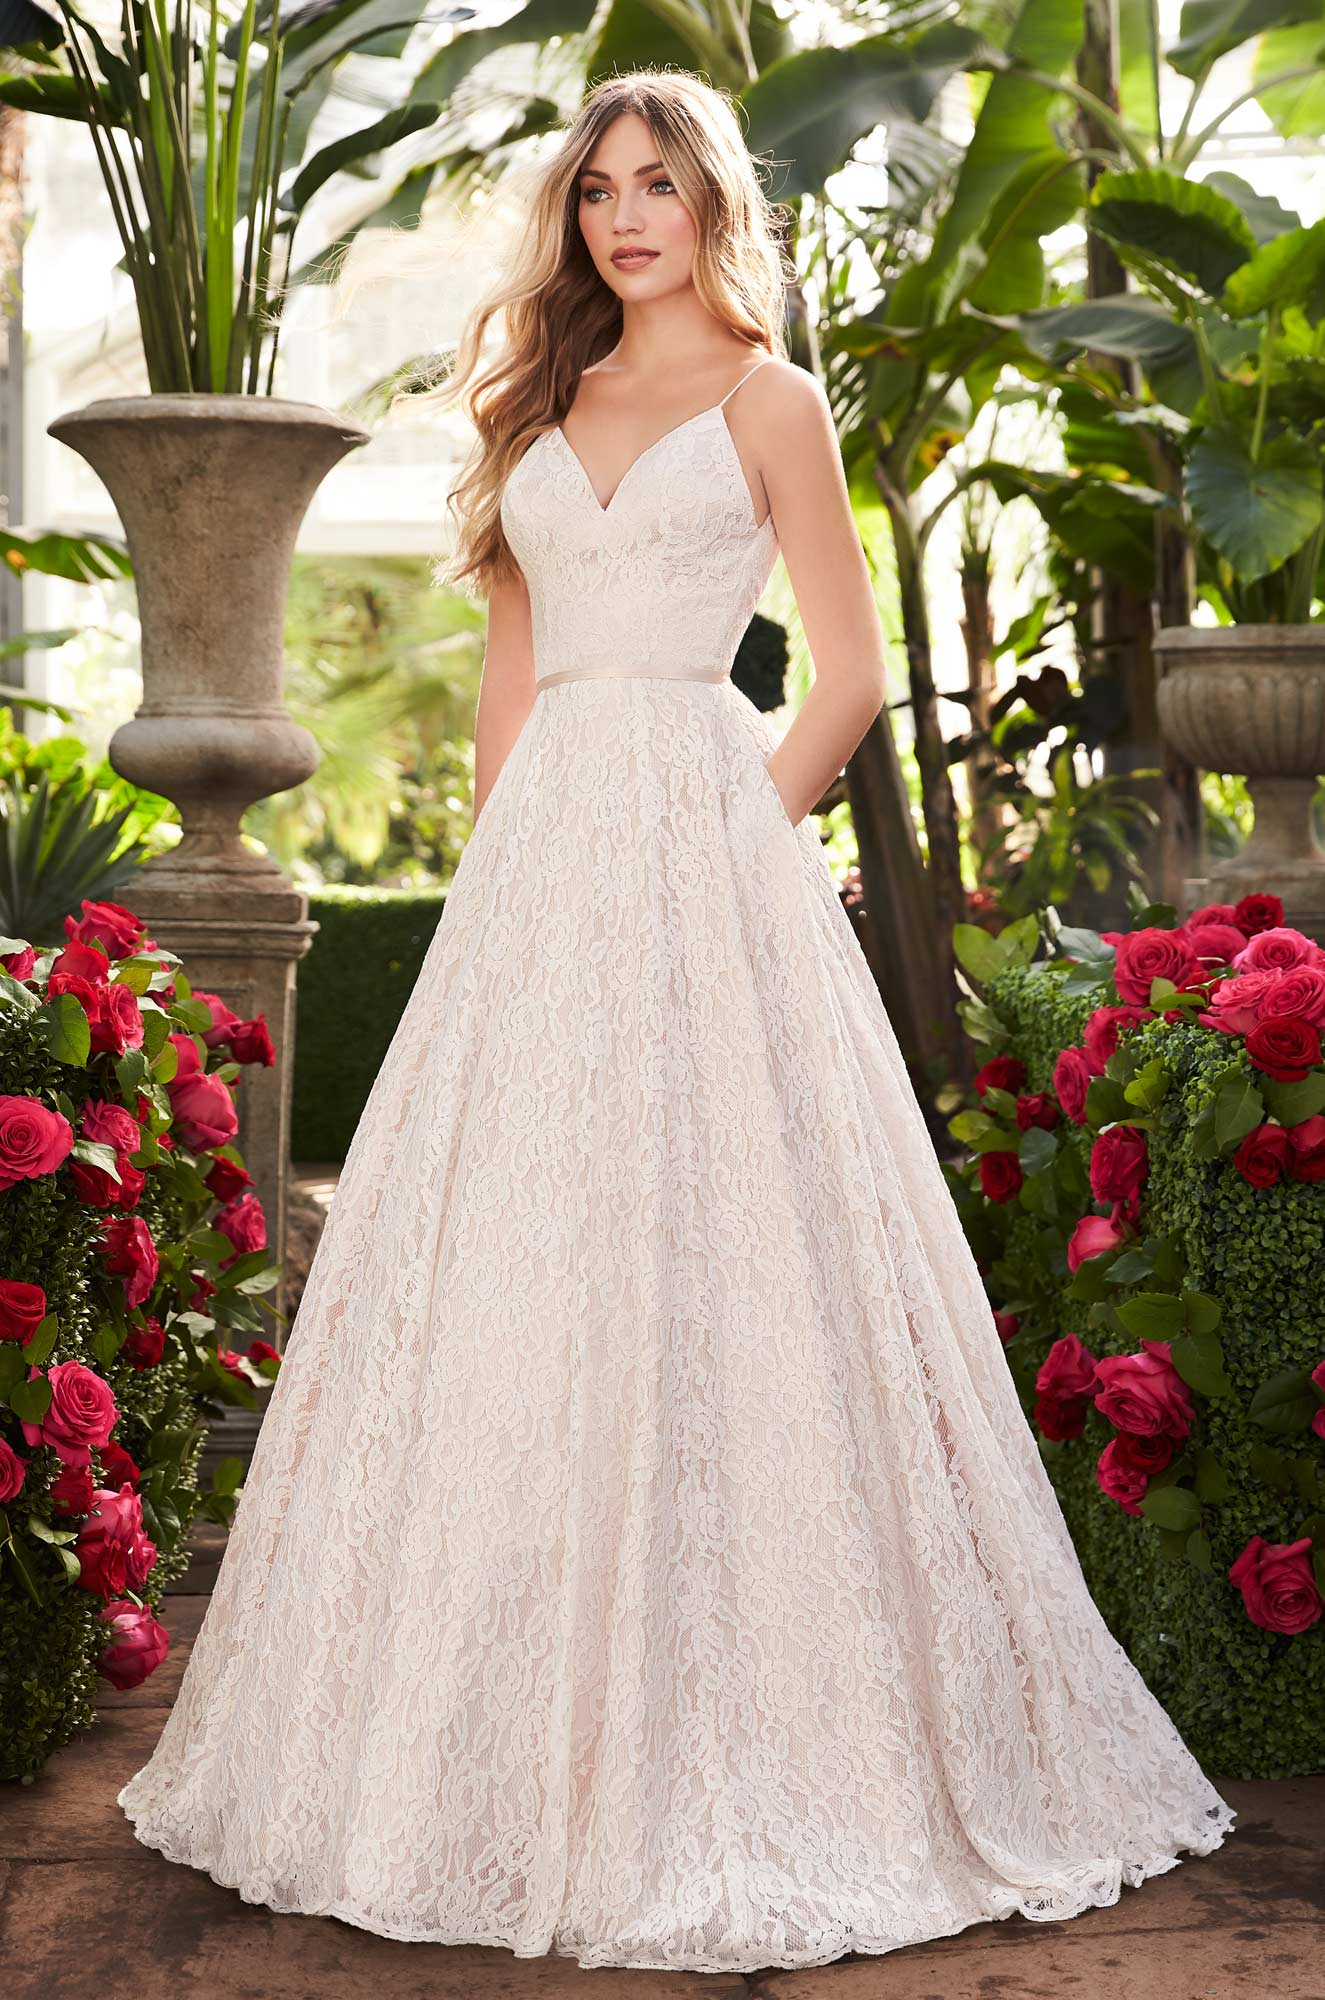 Lace Wedding Dress With Pockets – Style #2251 | Mikaella Bridal